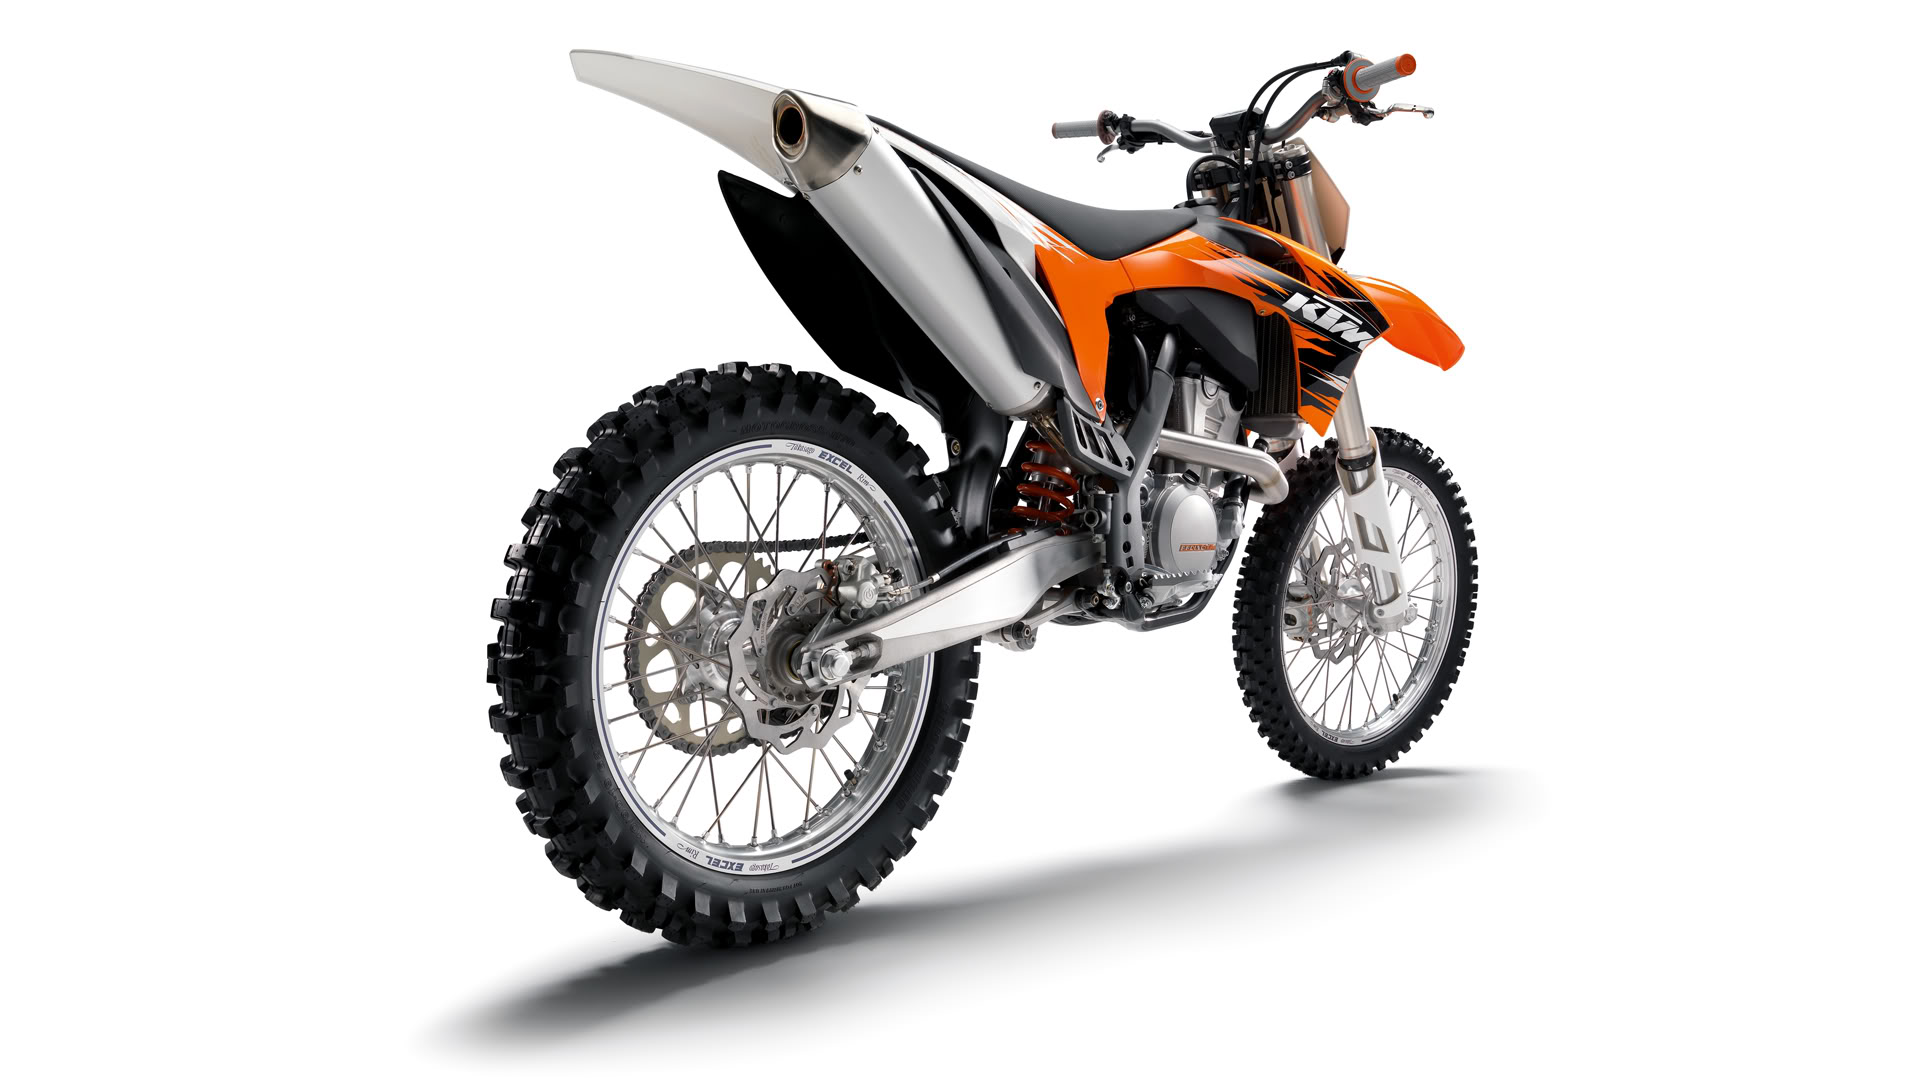 KTM Motocross Motorcycle Wallpaper Best Wallpaper with 1920x1080 1920x1080